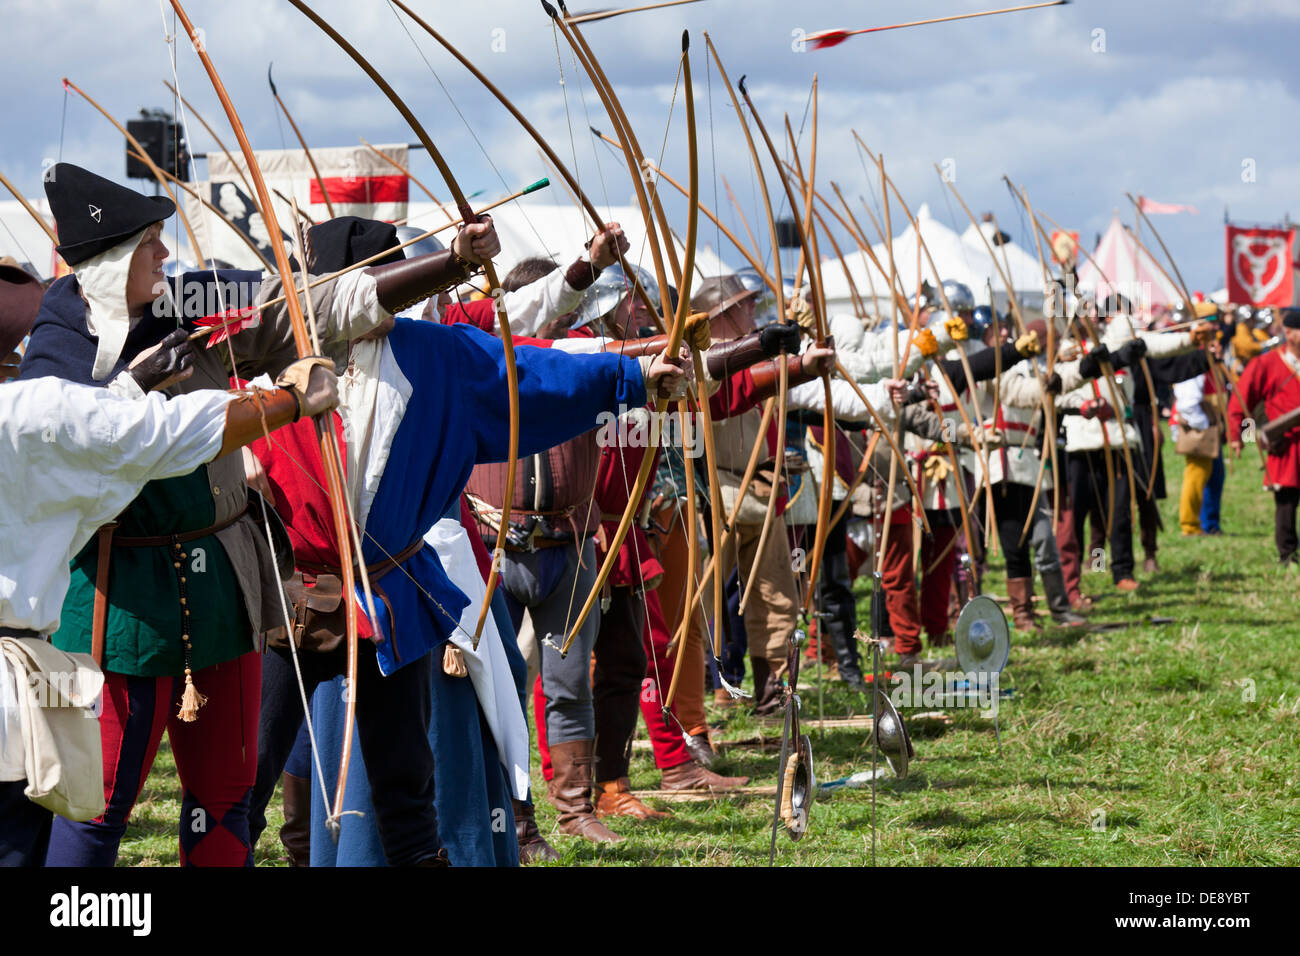 Archers firing in Wars of the Roses Federation re-enact the Battle of Bosworth  Hinckley Leicestershire England GB UK EU Europe - Stock Image